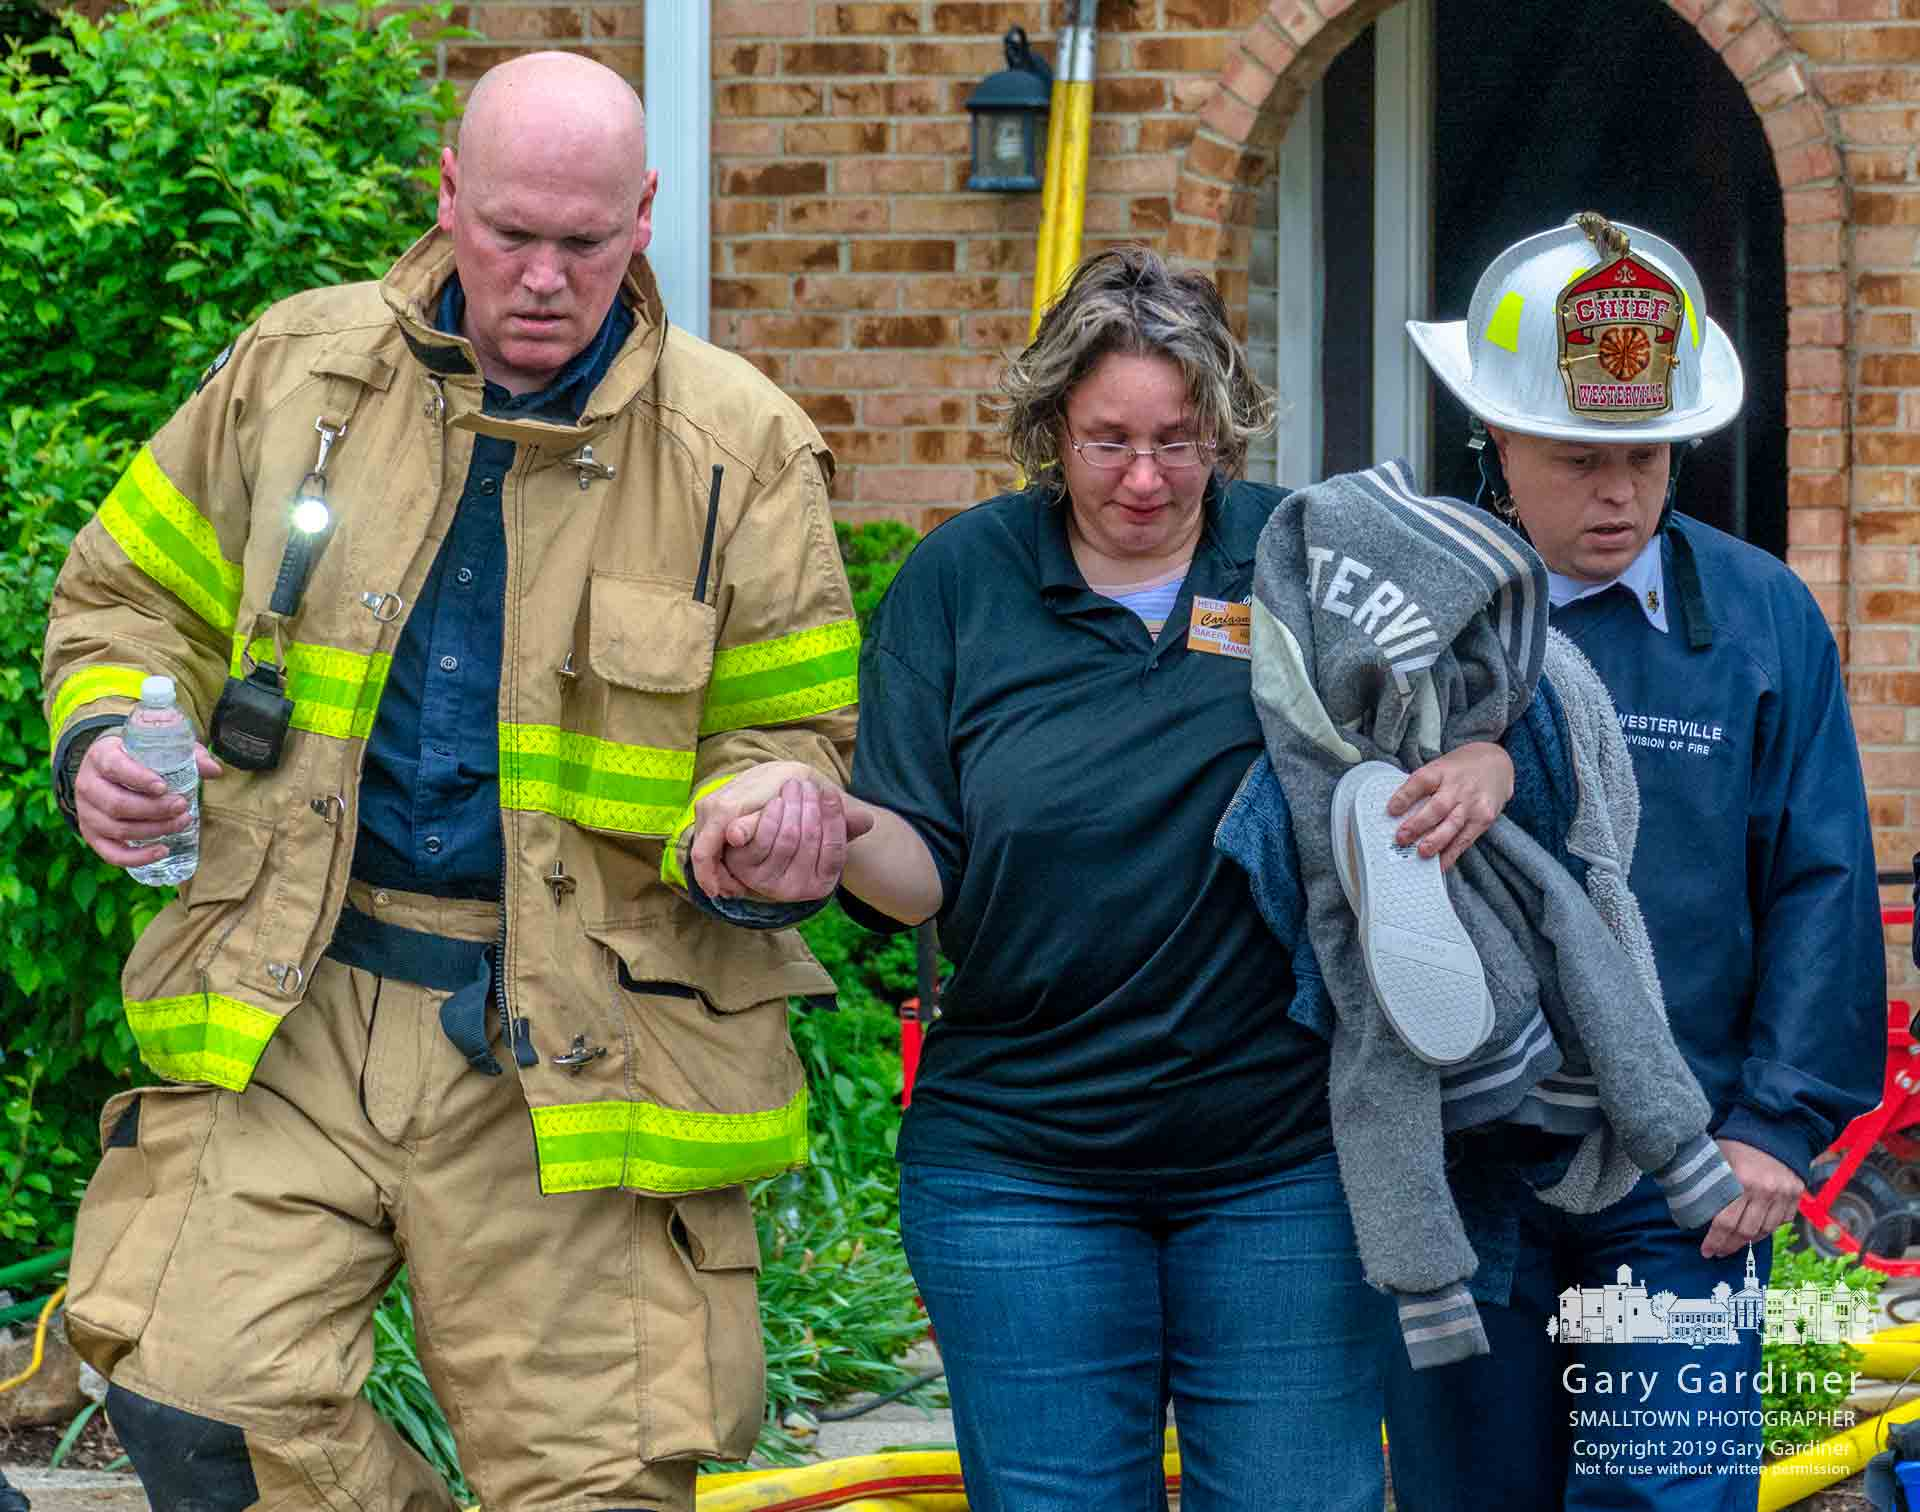 Westerville firefighters help a woman retrieve clothing from her smoke-damaged apartment after an adjacent apartment was damaged in a Saturday morning fire. My Final Photo for May 4, 2019.